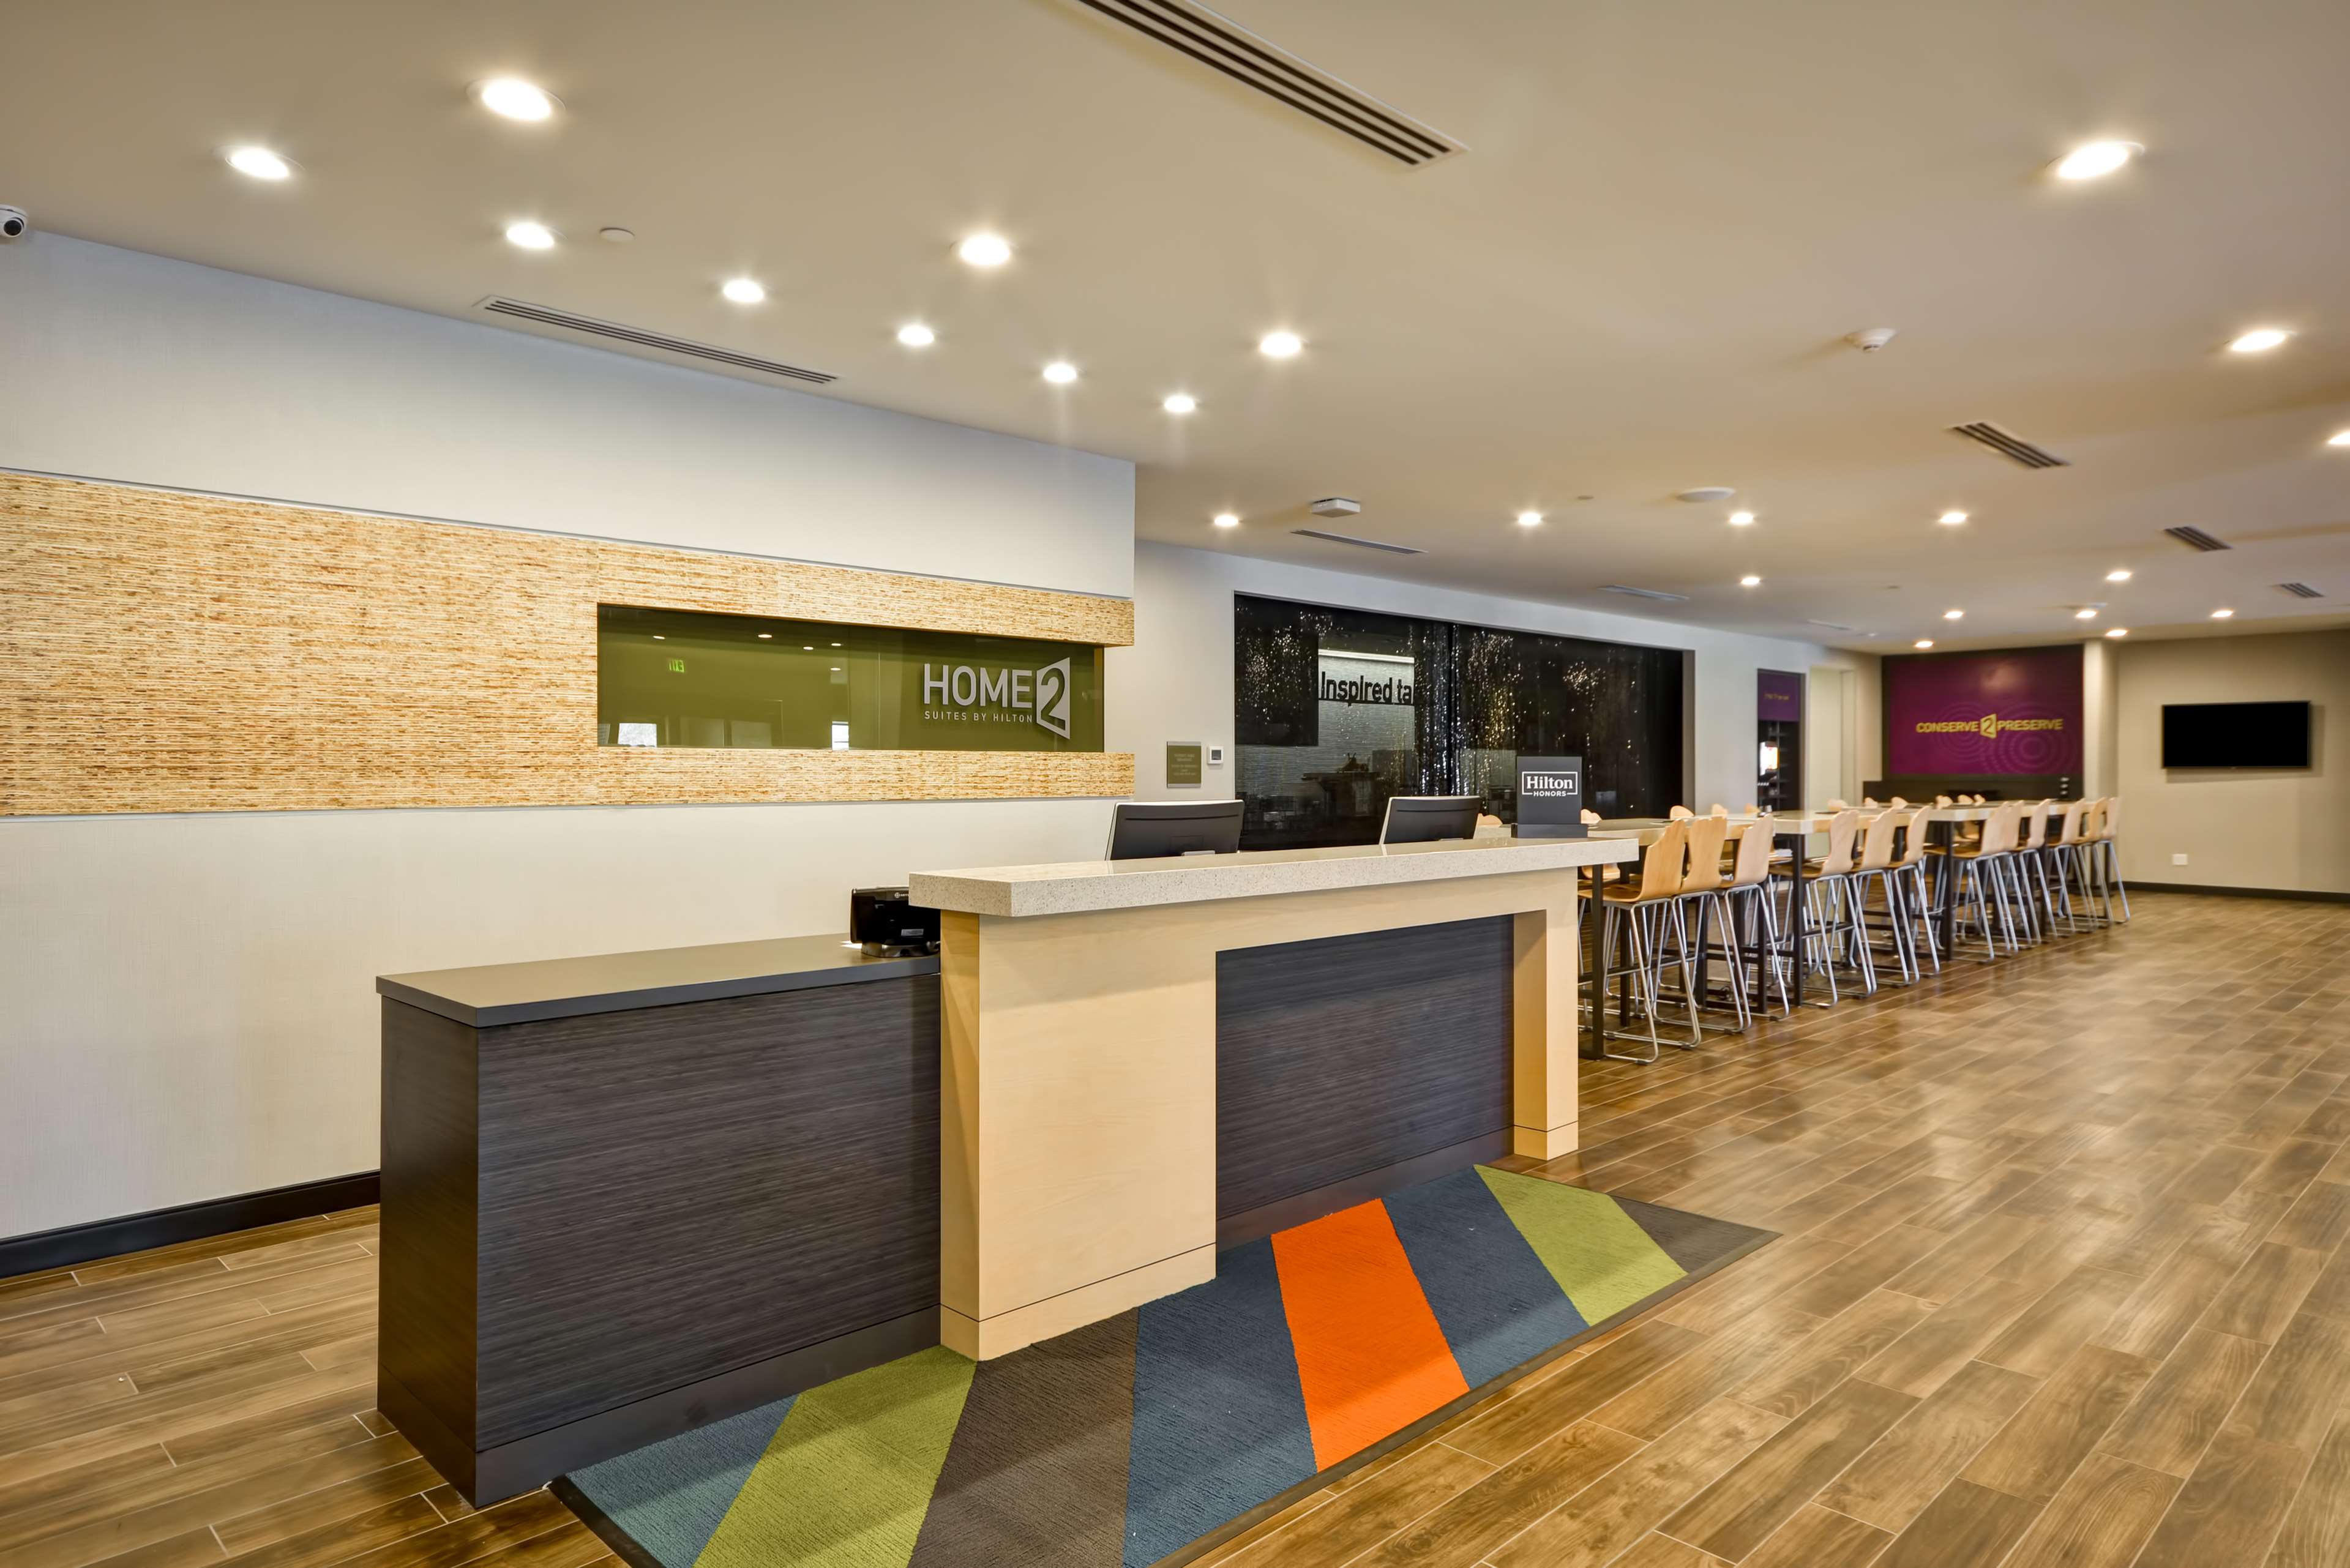 Home2 Suites By Hilton Evansville image 1